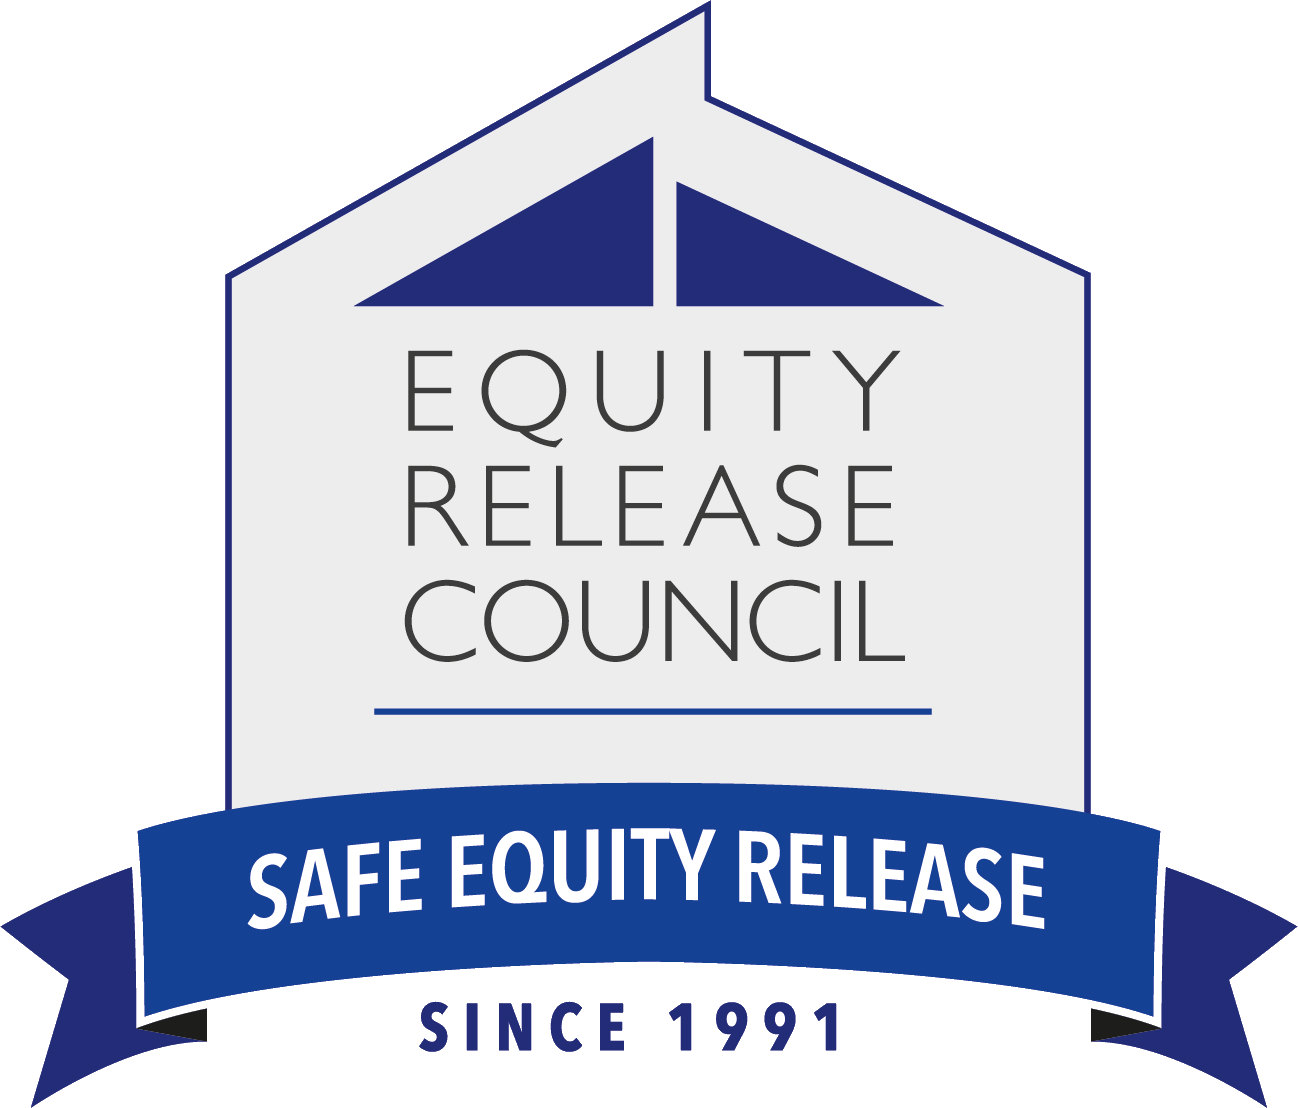 equity releace council logo